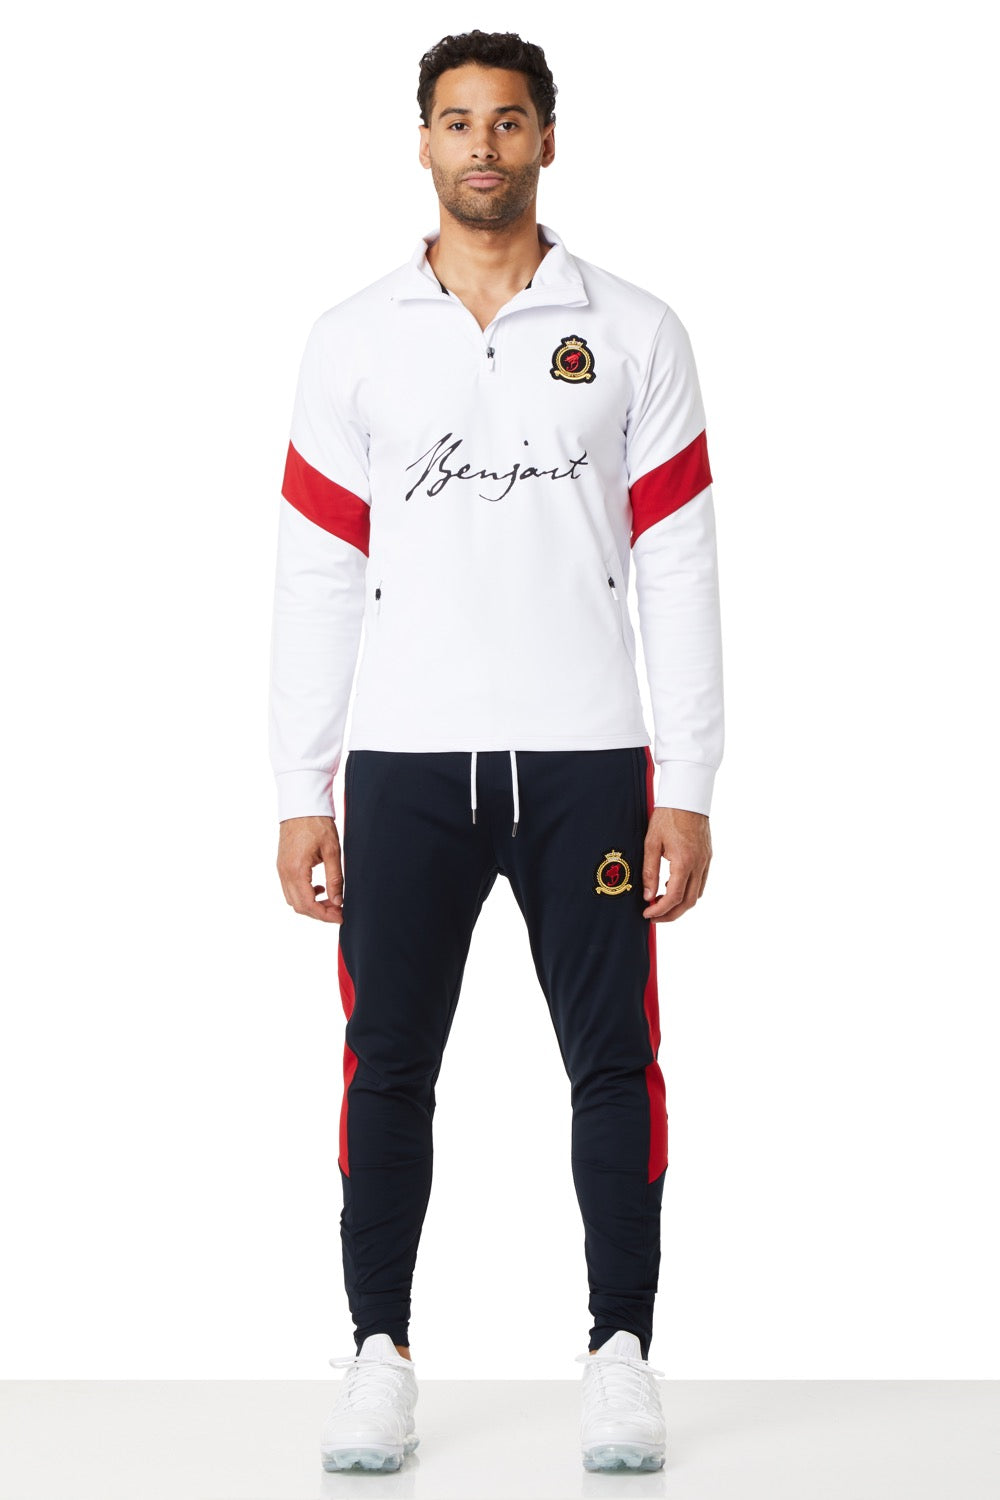 Benjart Sport 3 Lion Edition Track-top